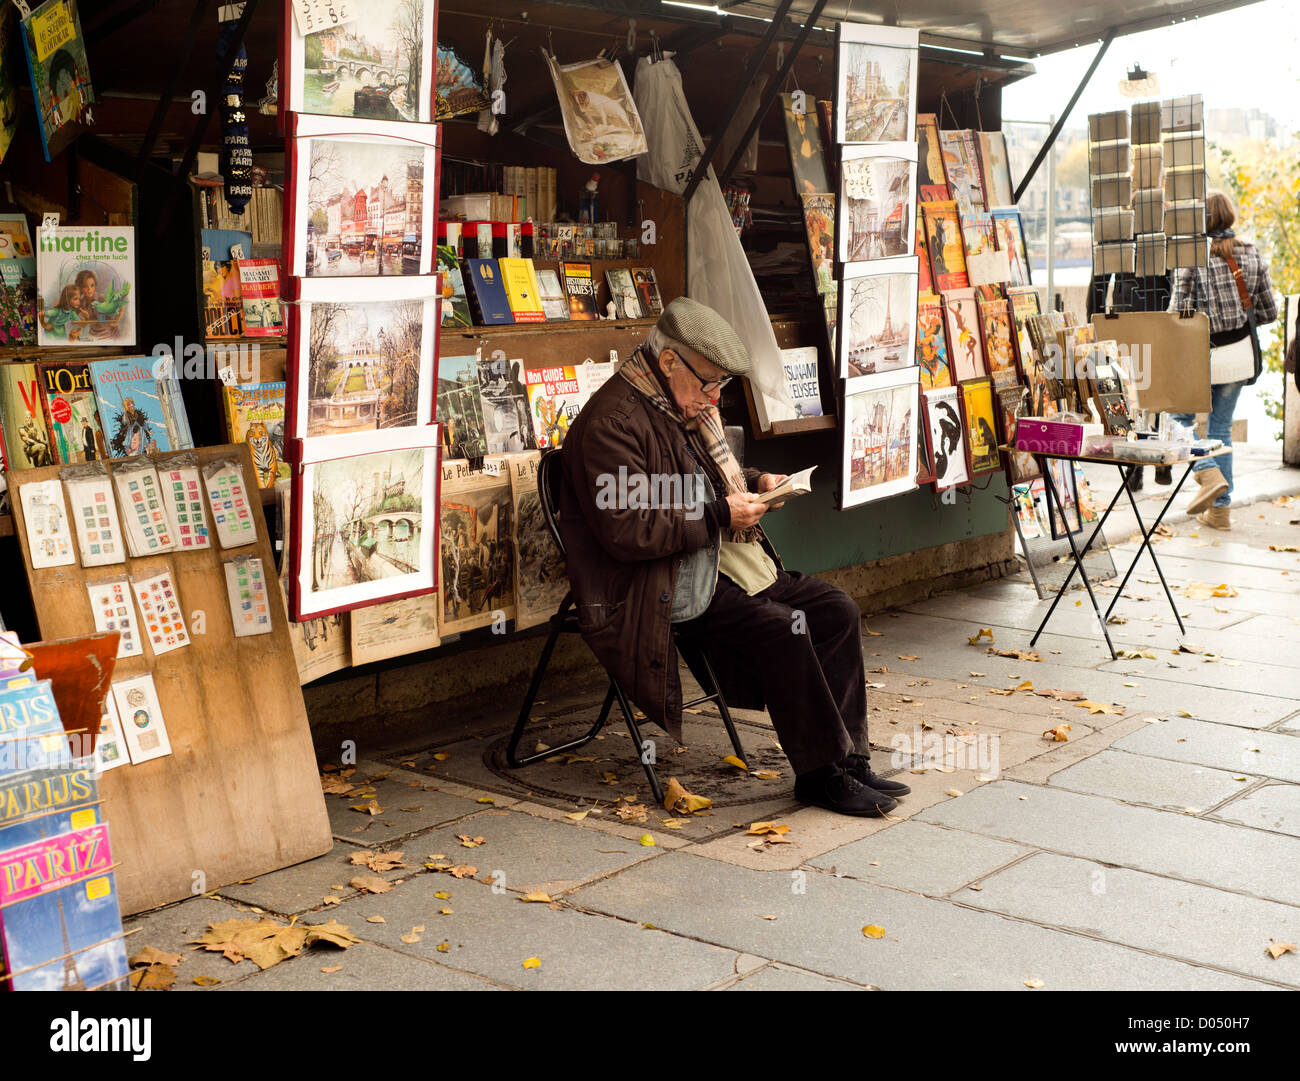 A book seller on the left bank of the Seine, sitting reading in front of his stand - Stock Image